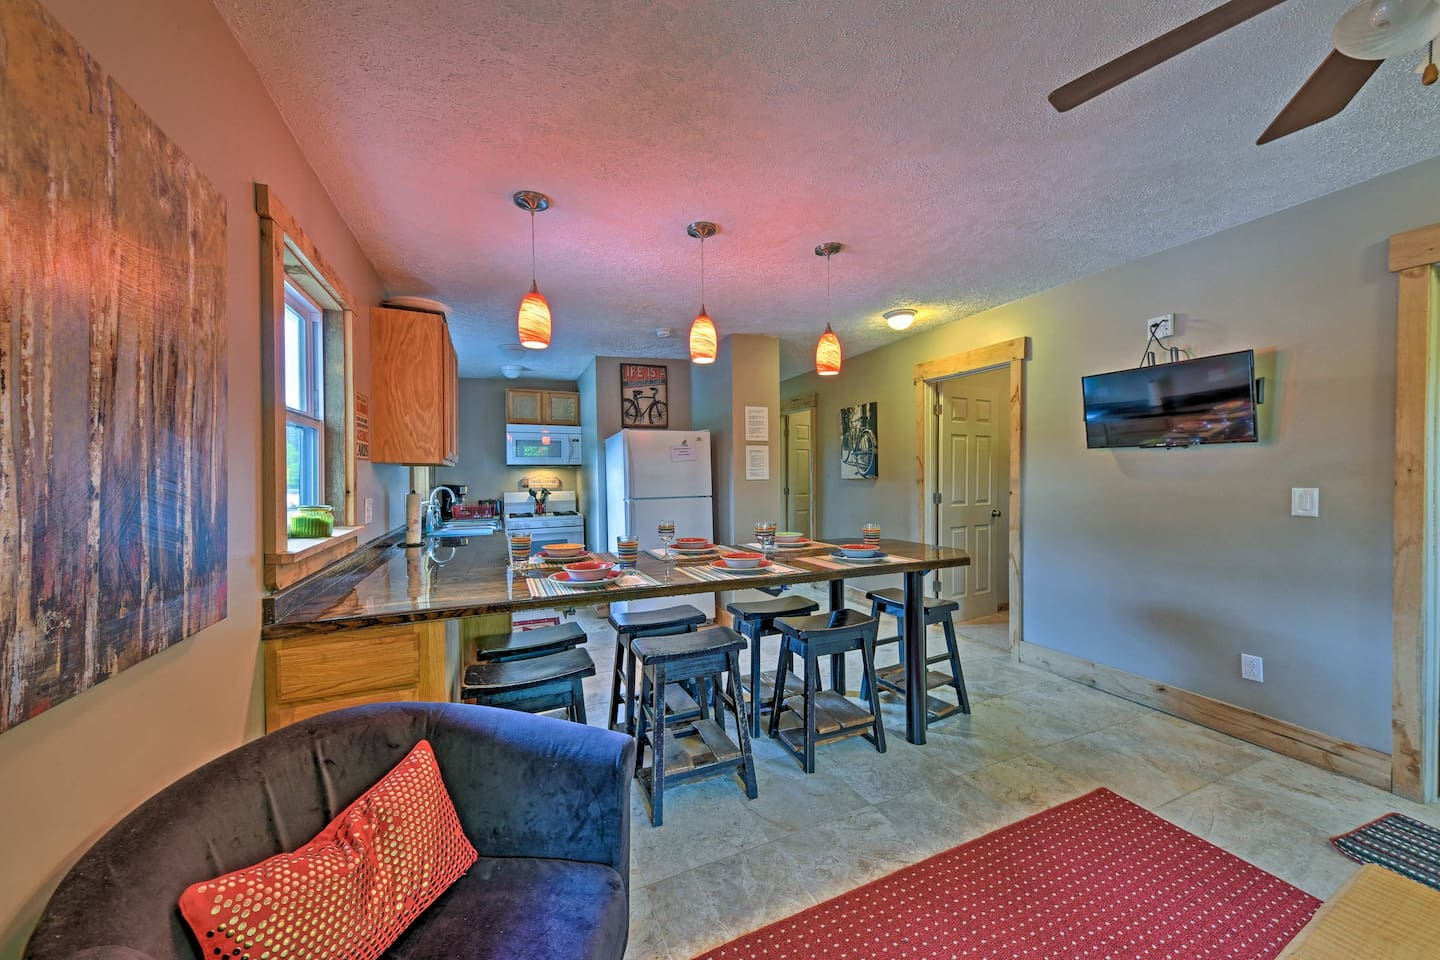 The cottage offers new plumbing, electrical, kitchen, bathrooms, and more!